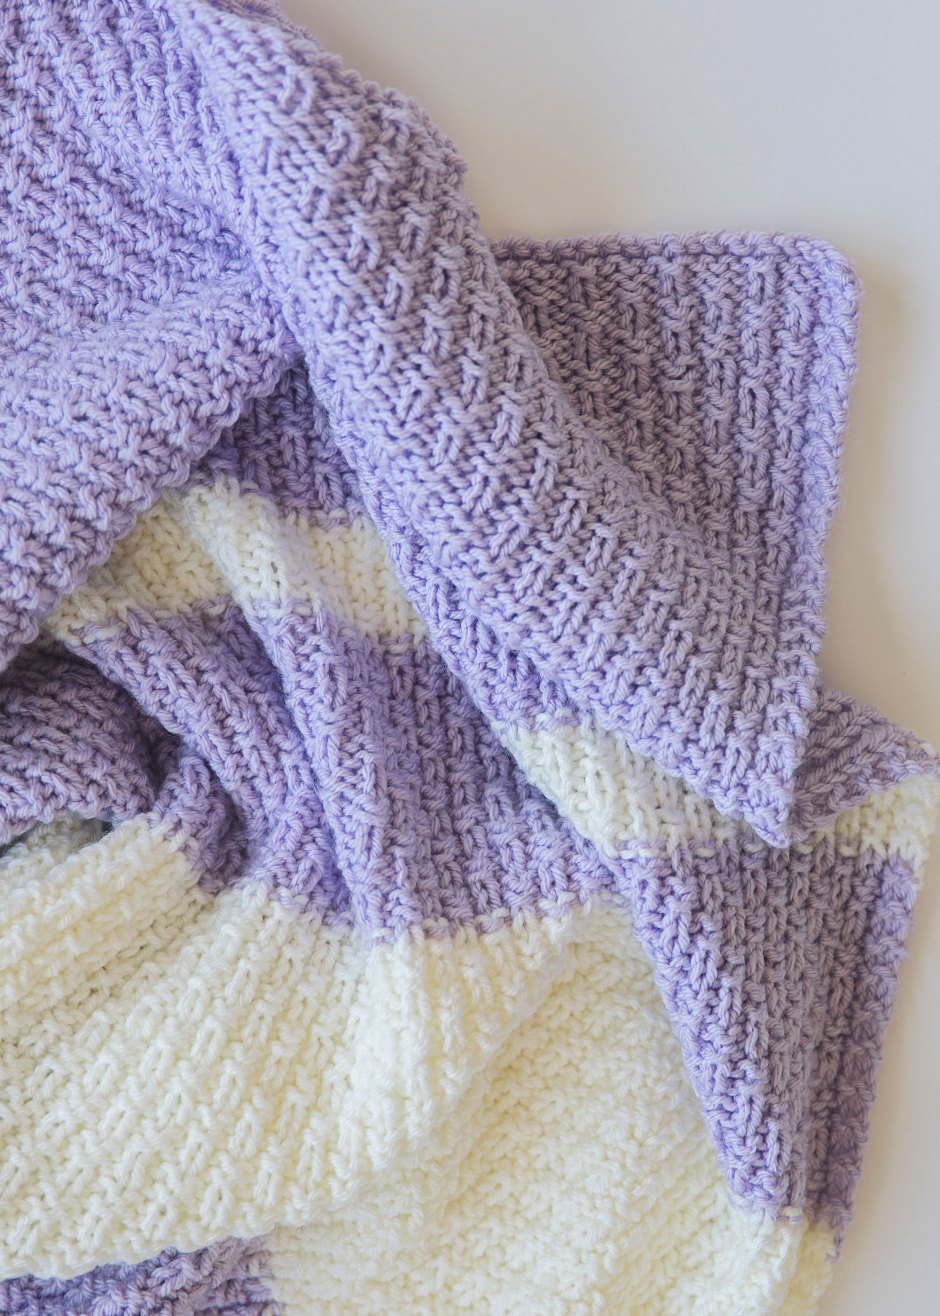 Quick Knit Baby Blanket Free Pattern : Easy Knit Baby Blanket Pattern - Leelee KnitsLeelee Knits